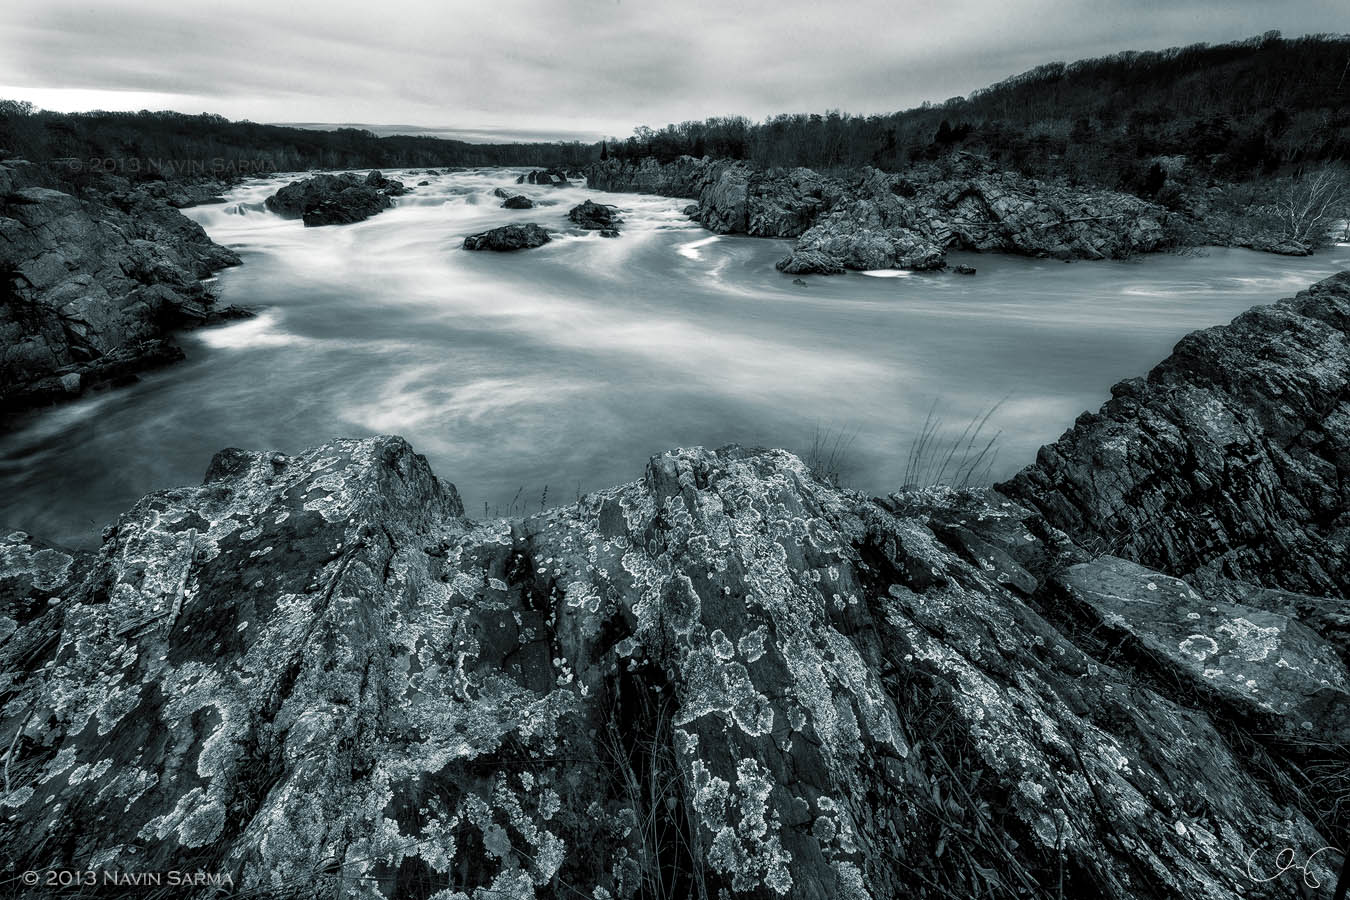 Water flow and rock formations take many shapes at Great Falls Park, VA